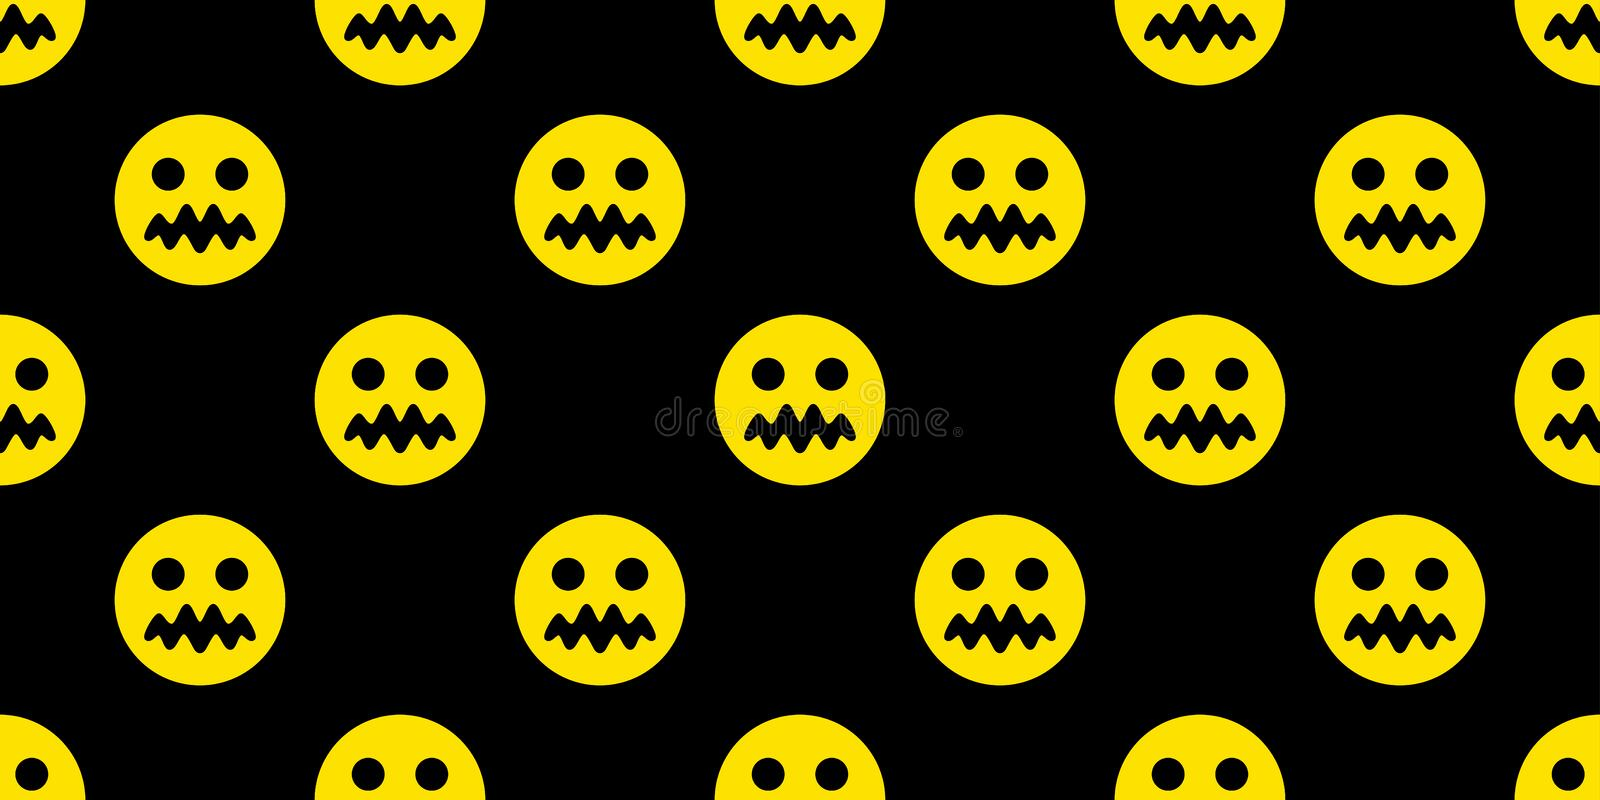 Smiley face seamless pattern  emoji icon Halloween skull ghost scarf isolated repeat wallpaper tile background cartoon illus vector illustration